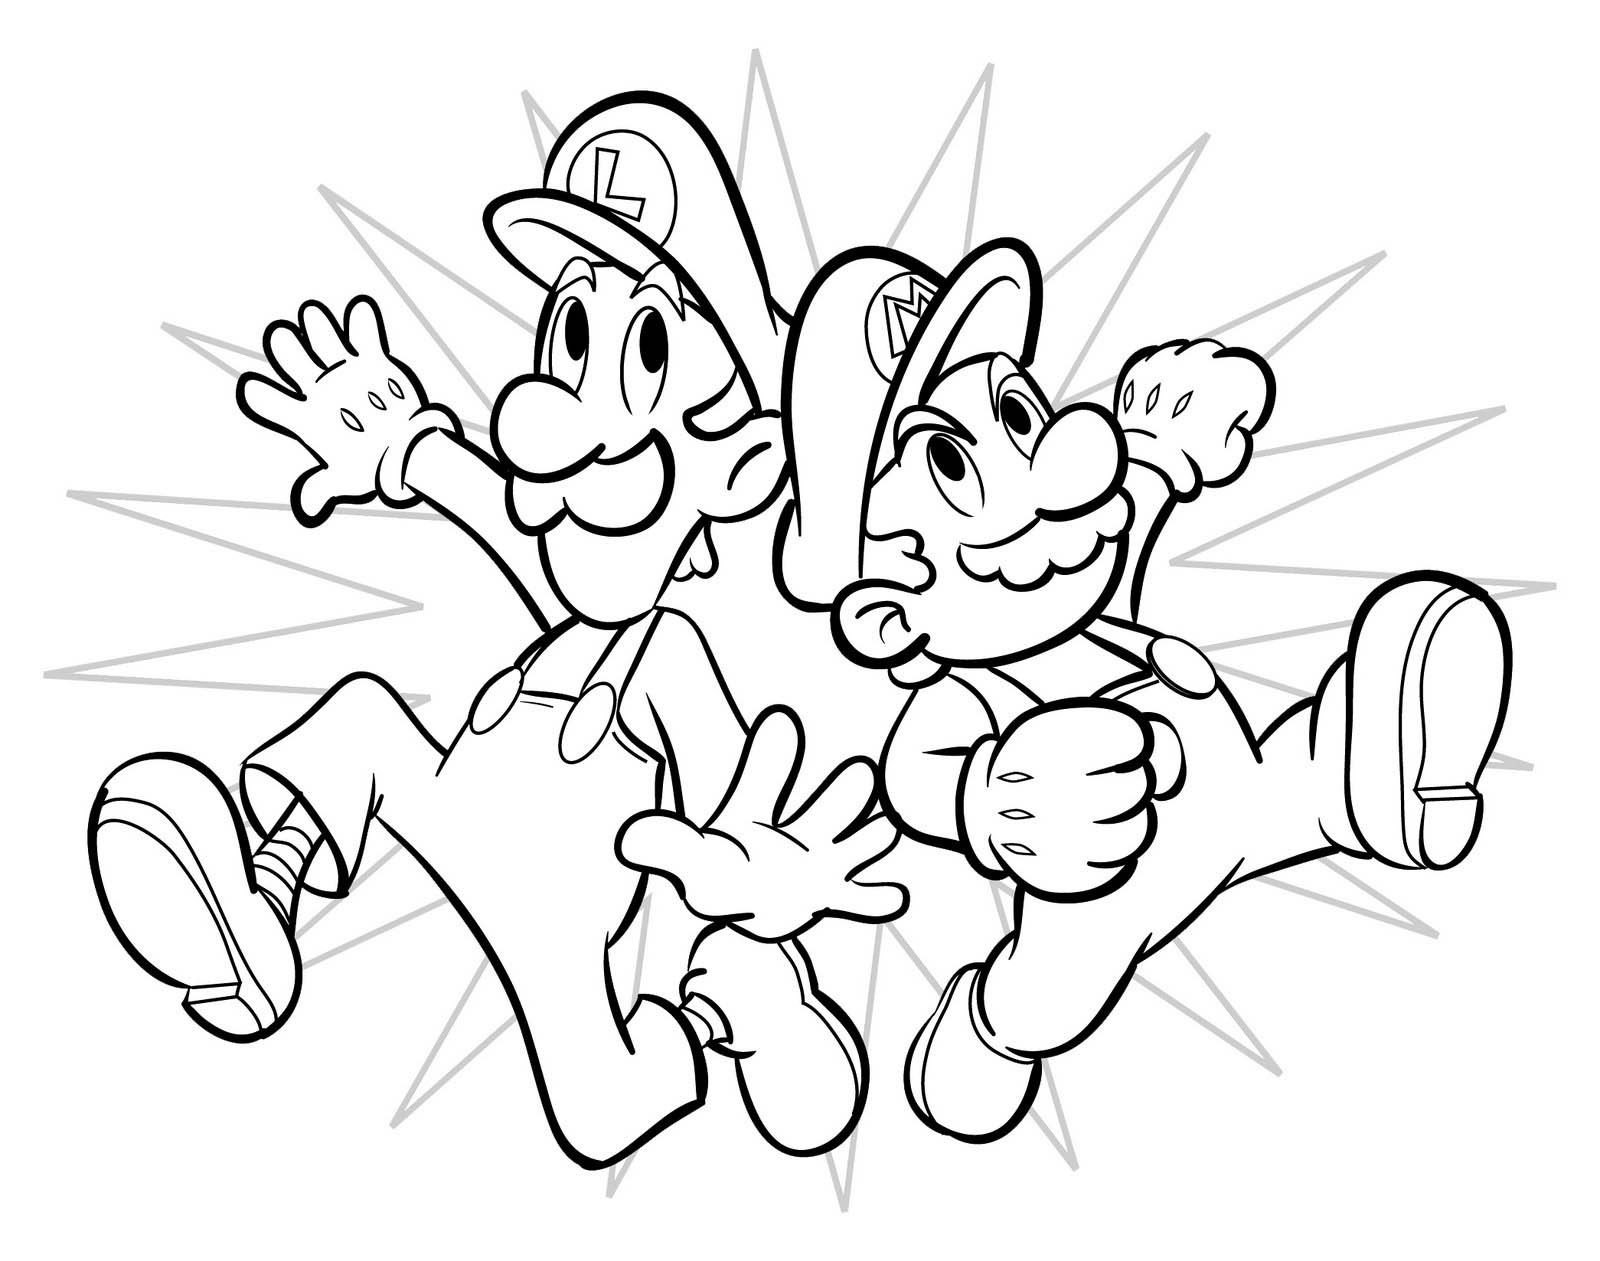 free printable mario coloring pages for kids - Free Color Sheets For Kids